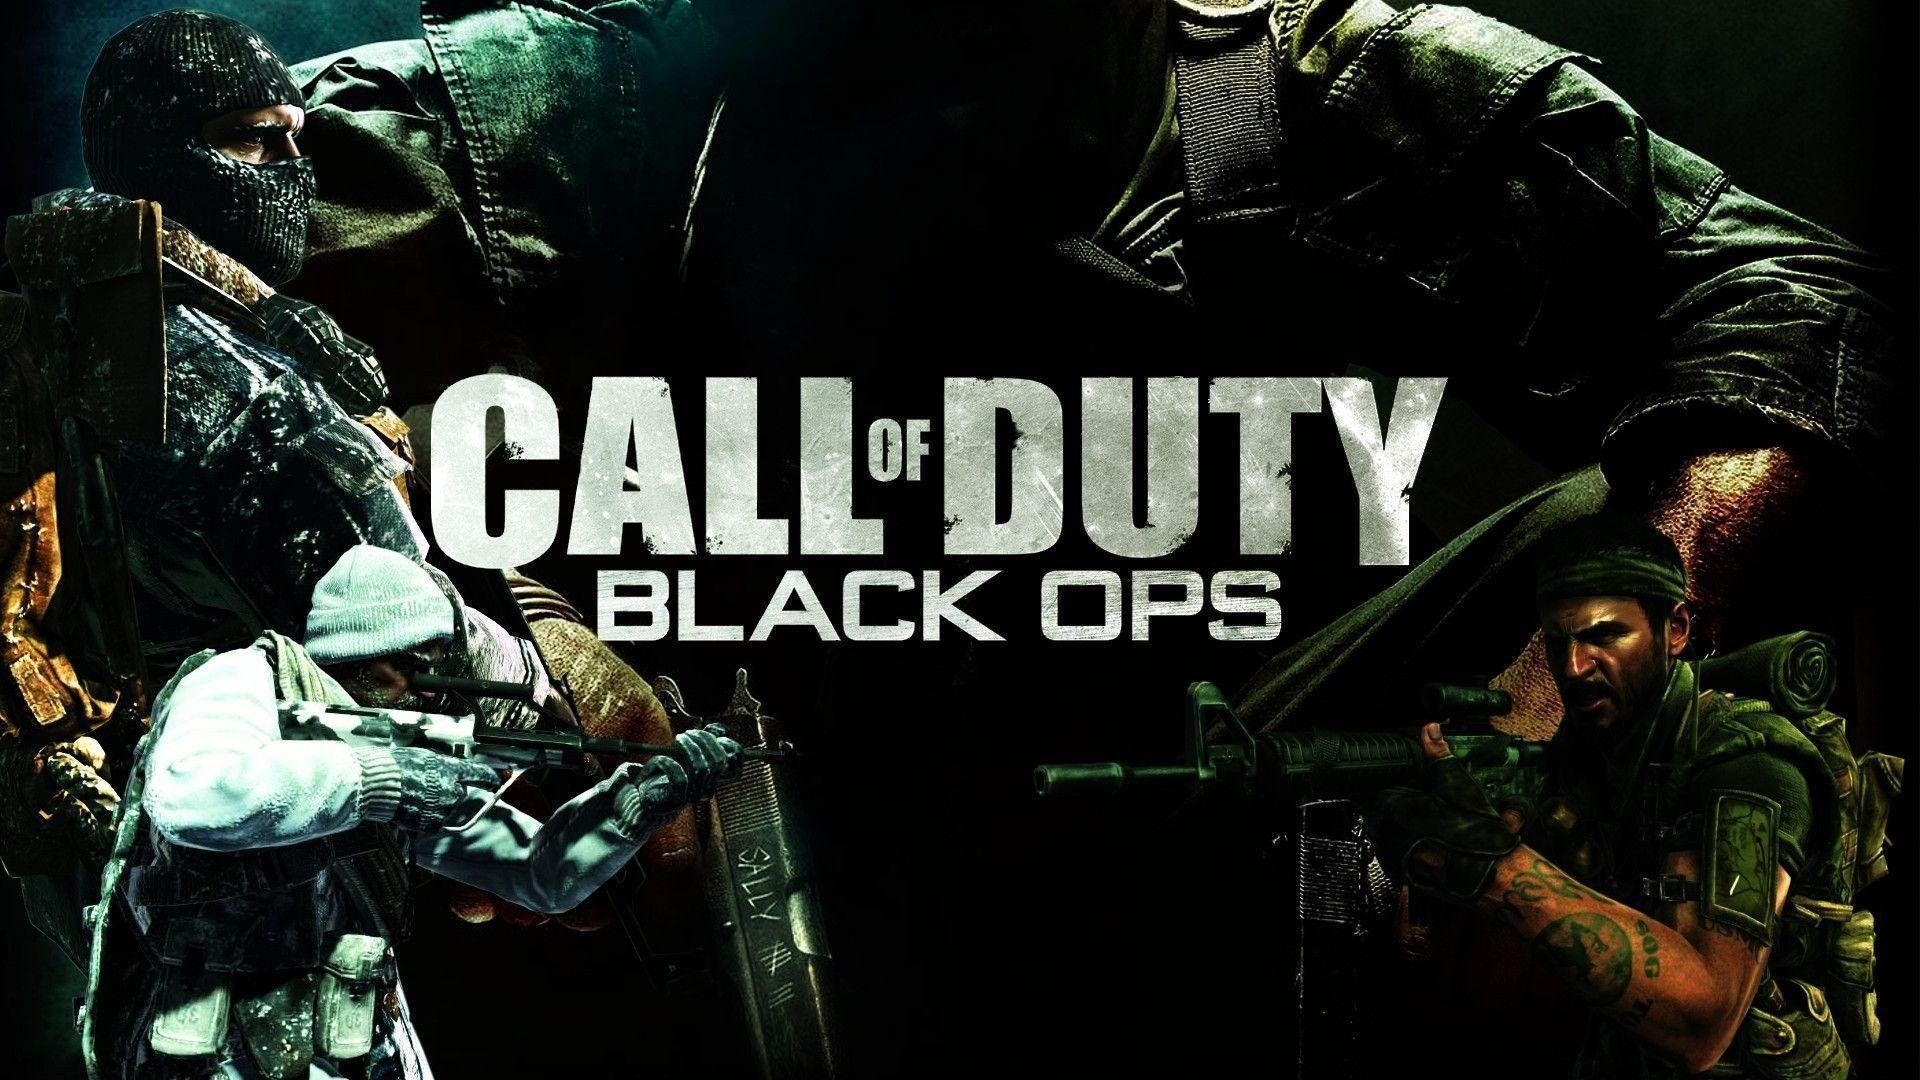 … call of duty black ops backgrounds wallpaper cave …